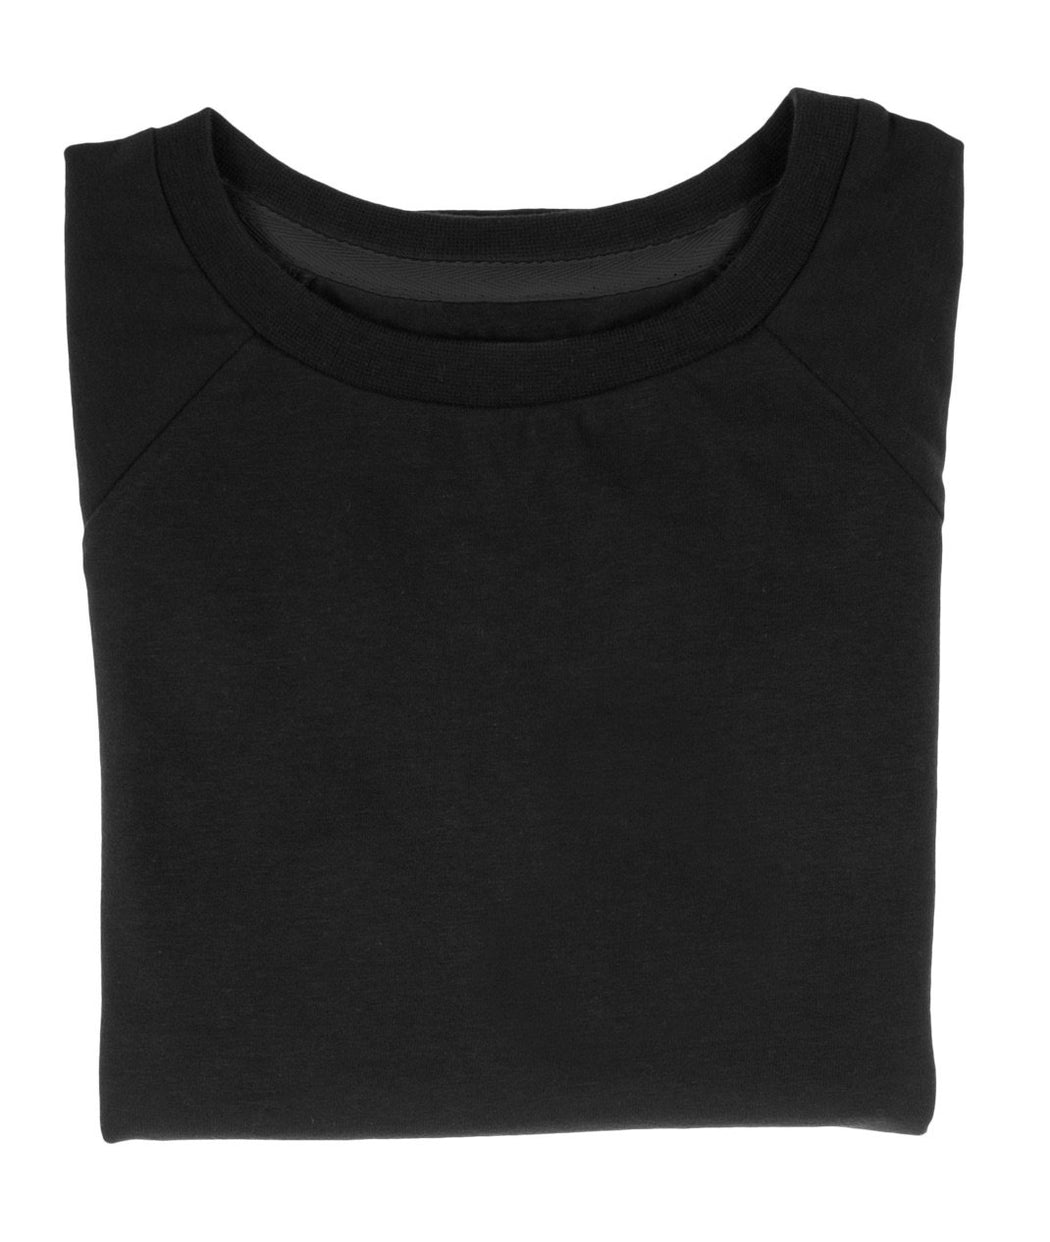 The Luxury Tee - Cosmic Black | T-shirts & Tops | ORBASICS | [product_tag] - Fair Bazaar Ethical Living